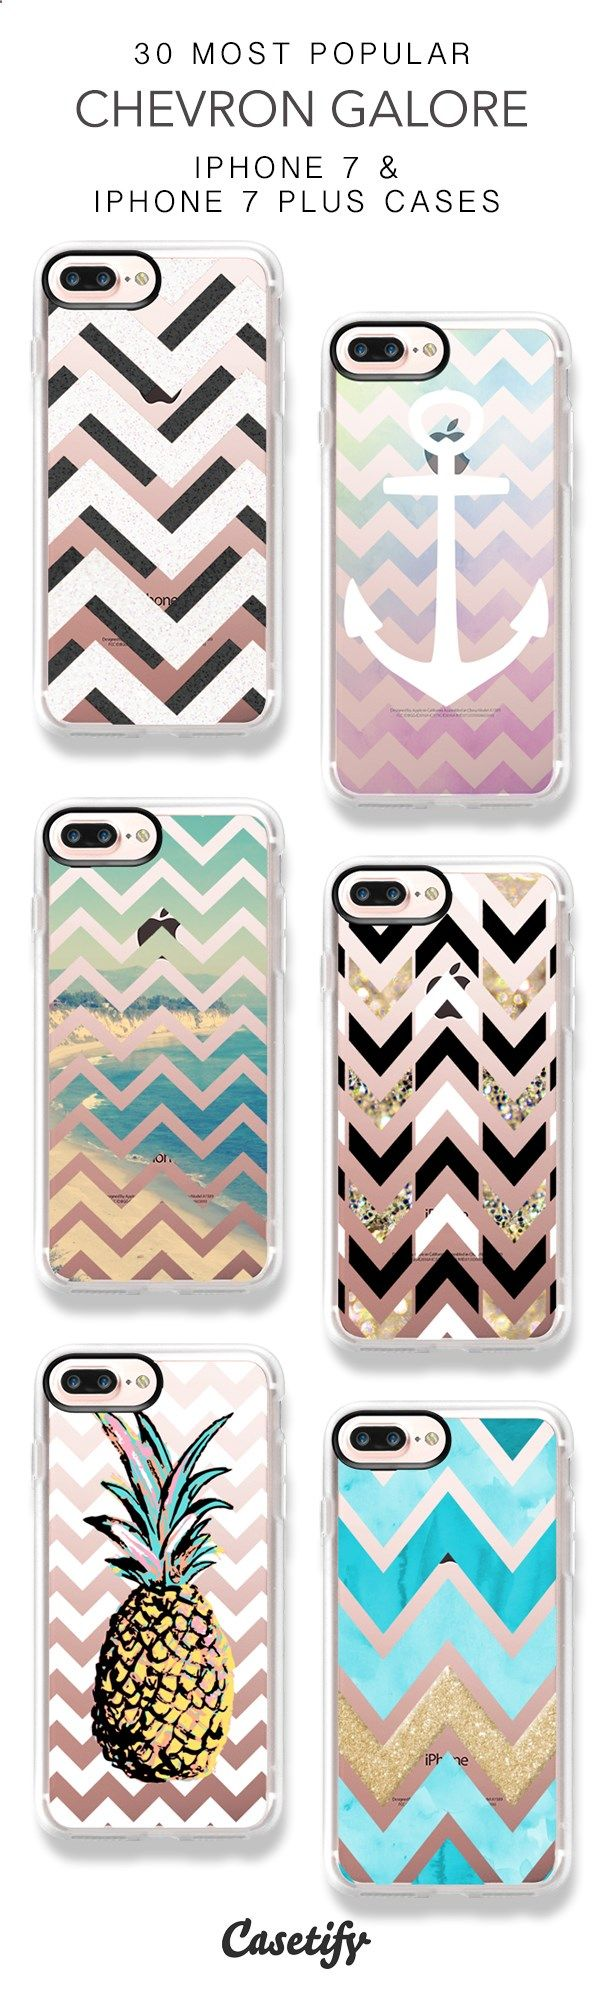 Phone Cases - 30 Most Popular Chevron Galore Protective iPhone 7 Cases and iPhone 7 Plus Cases. More Pattern iPhone case here > www.casetify.com/... http://amzn.to/2rsh3Be